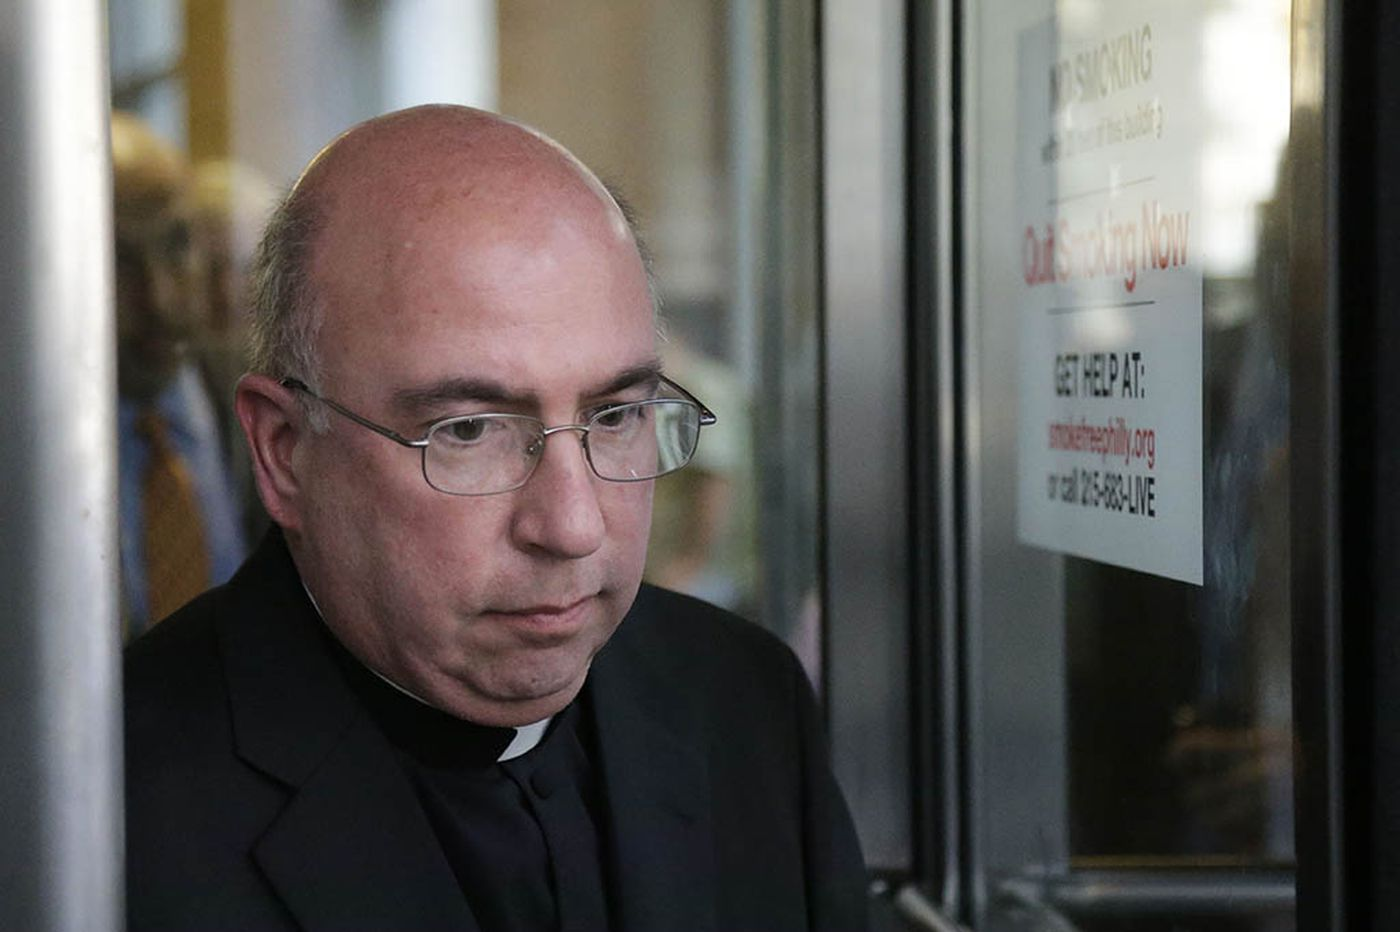 After two hung juries, accused priest will not be retried